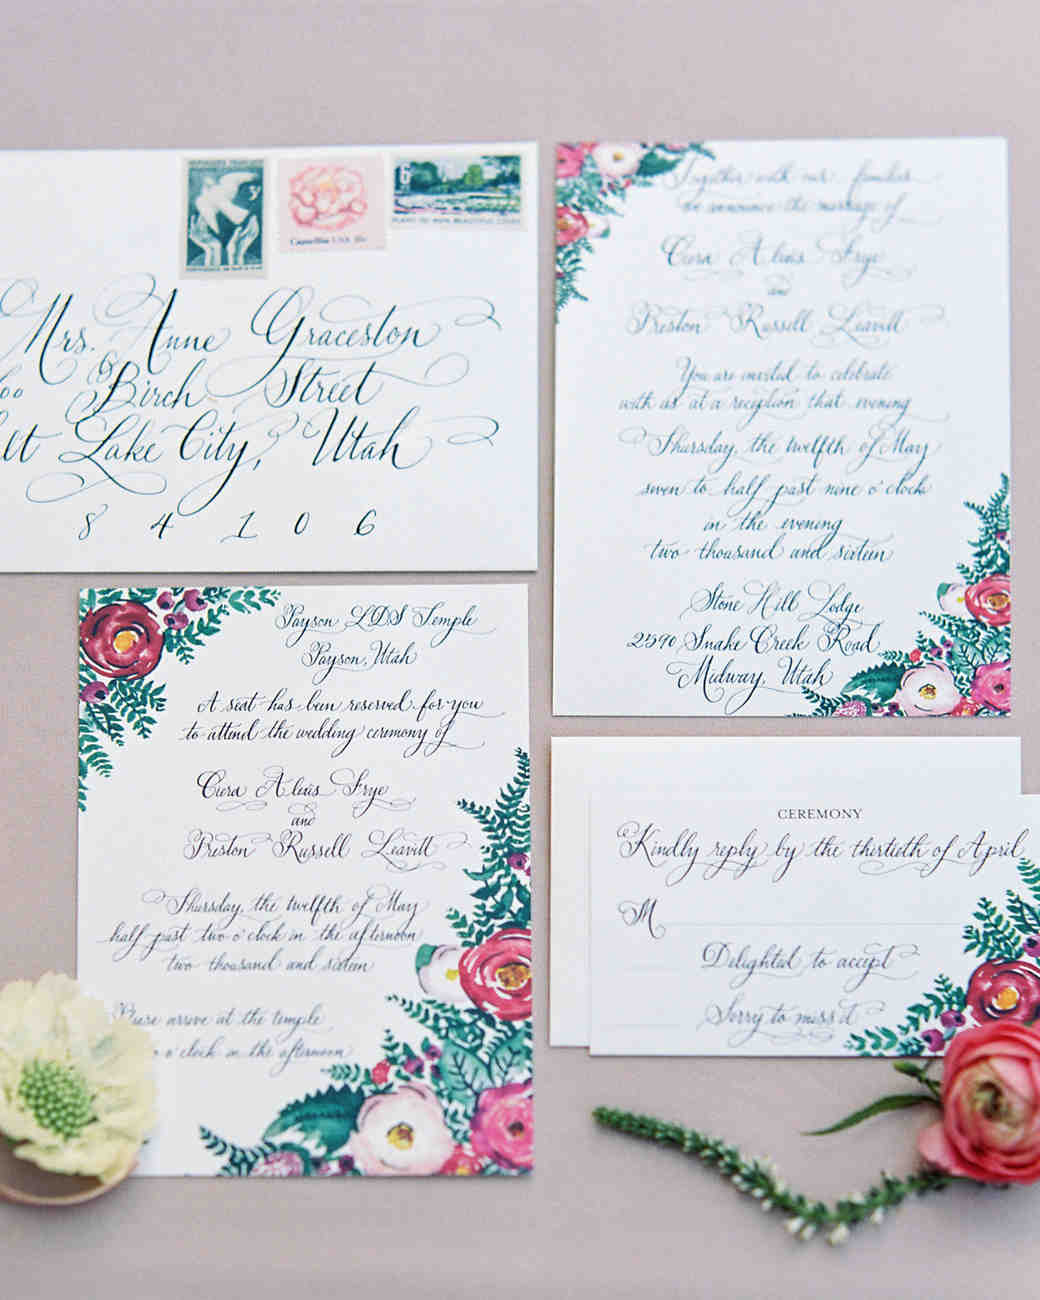 Utah Wedding Invitations: An Outdoorsy Couple Gets Hitched In The Mountains Of Utah